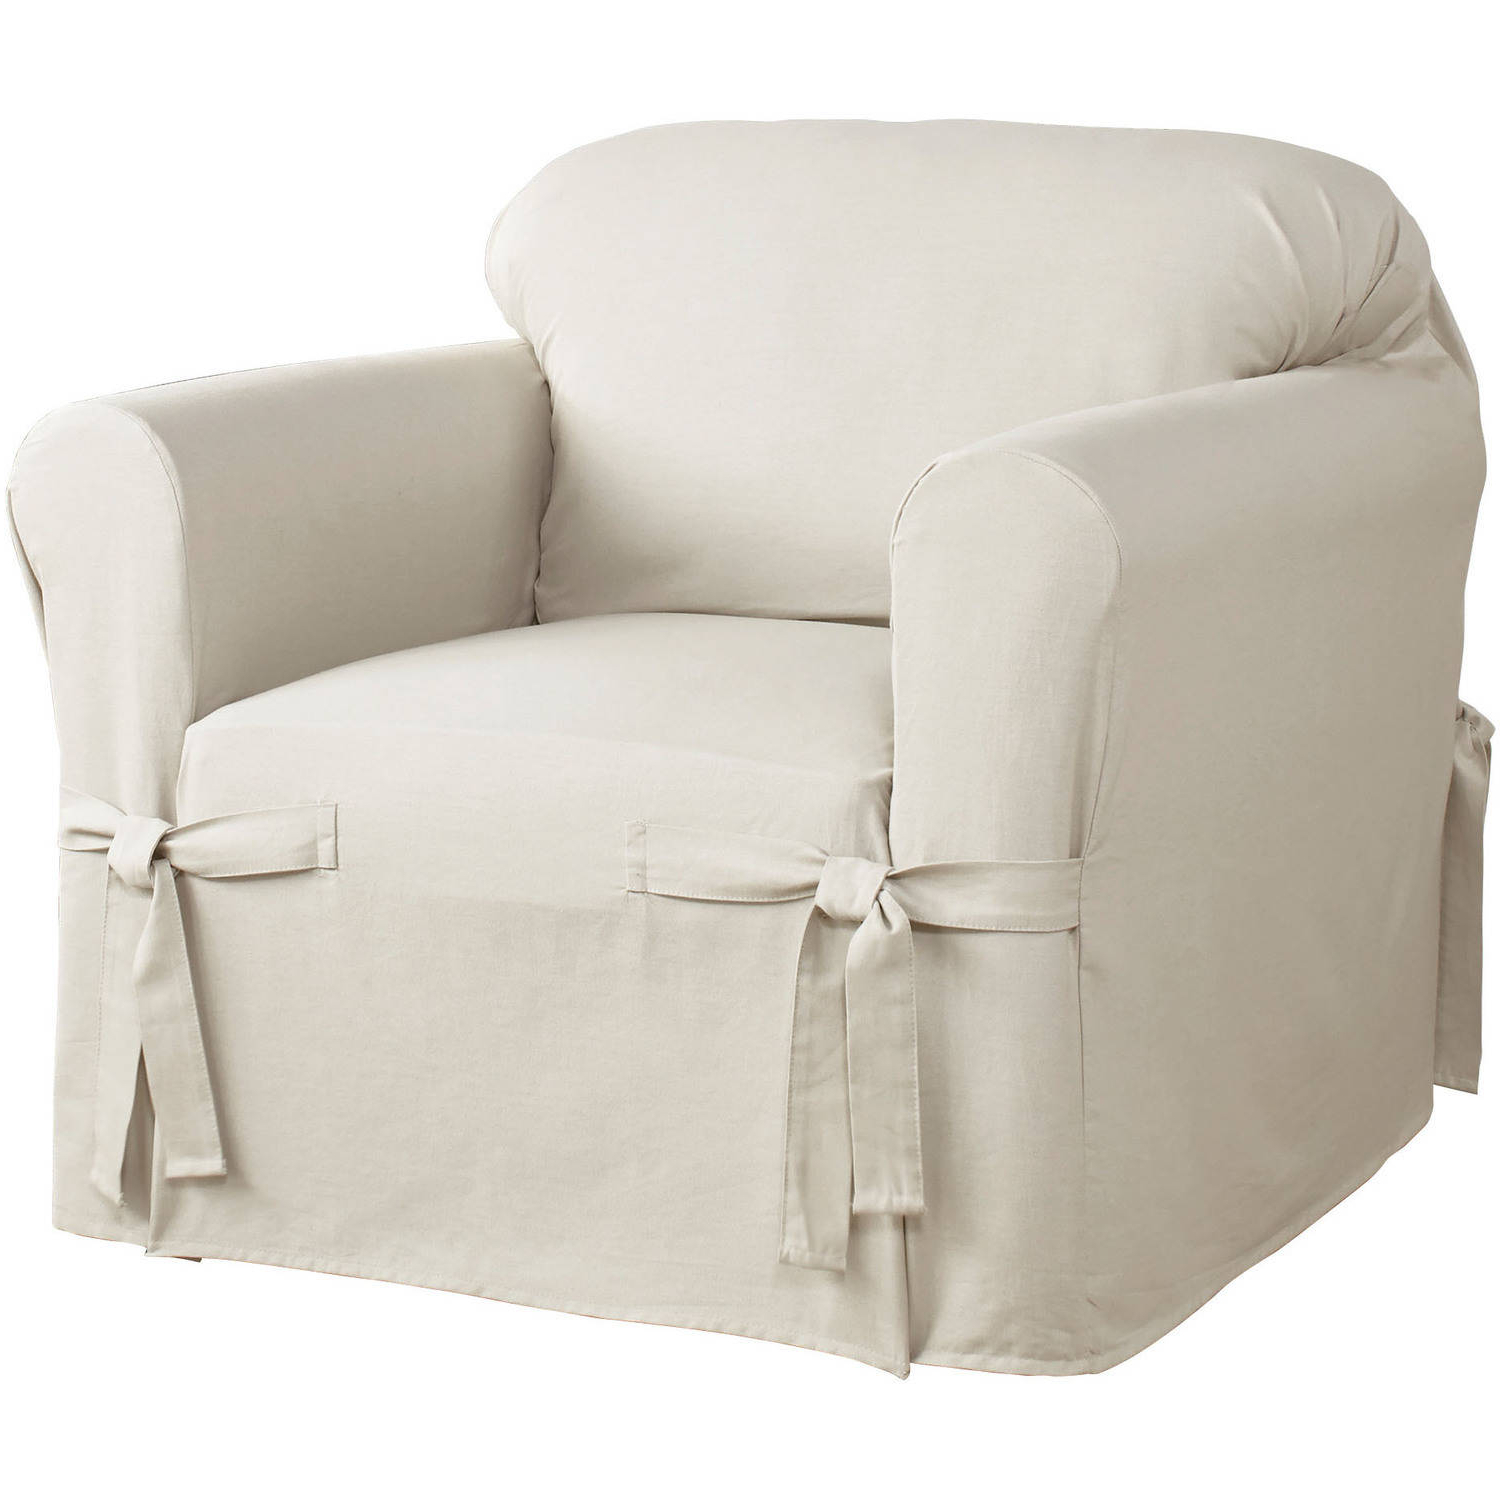 Well Liked Serta Relaxed Fit Cotton Duck Furniture Slipcover, Chair 1 Piece Box Throughout Slipcovers For Chairs And Sofas (View 10 of 20)